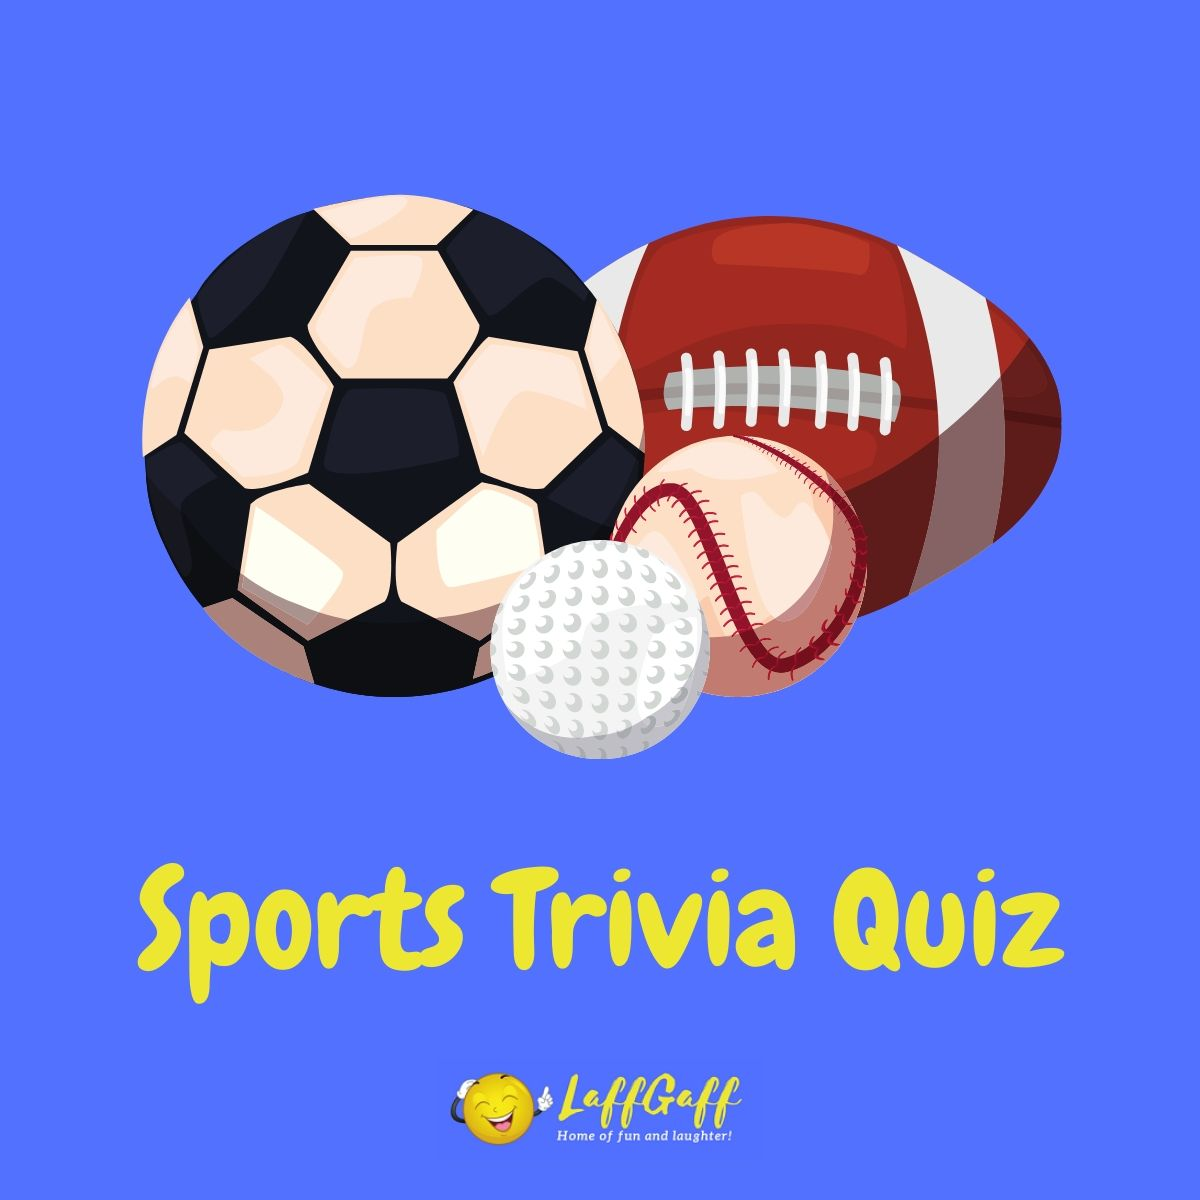 Featured image for a page of sports trivia questions and answers.